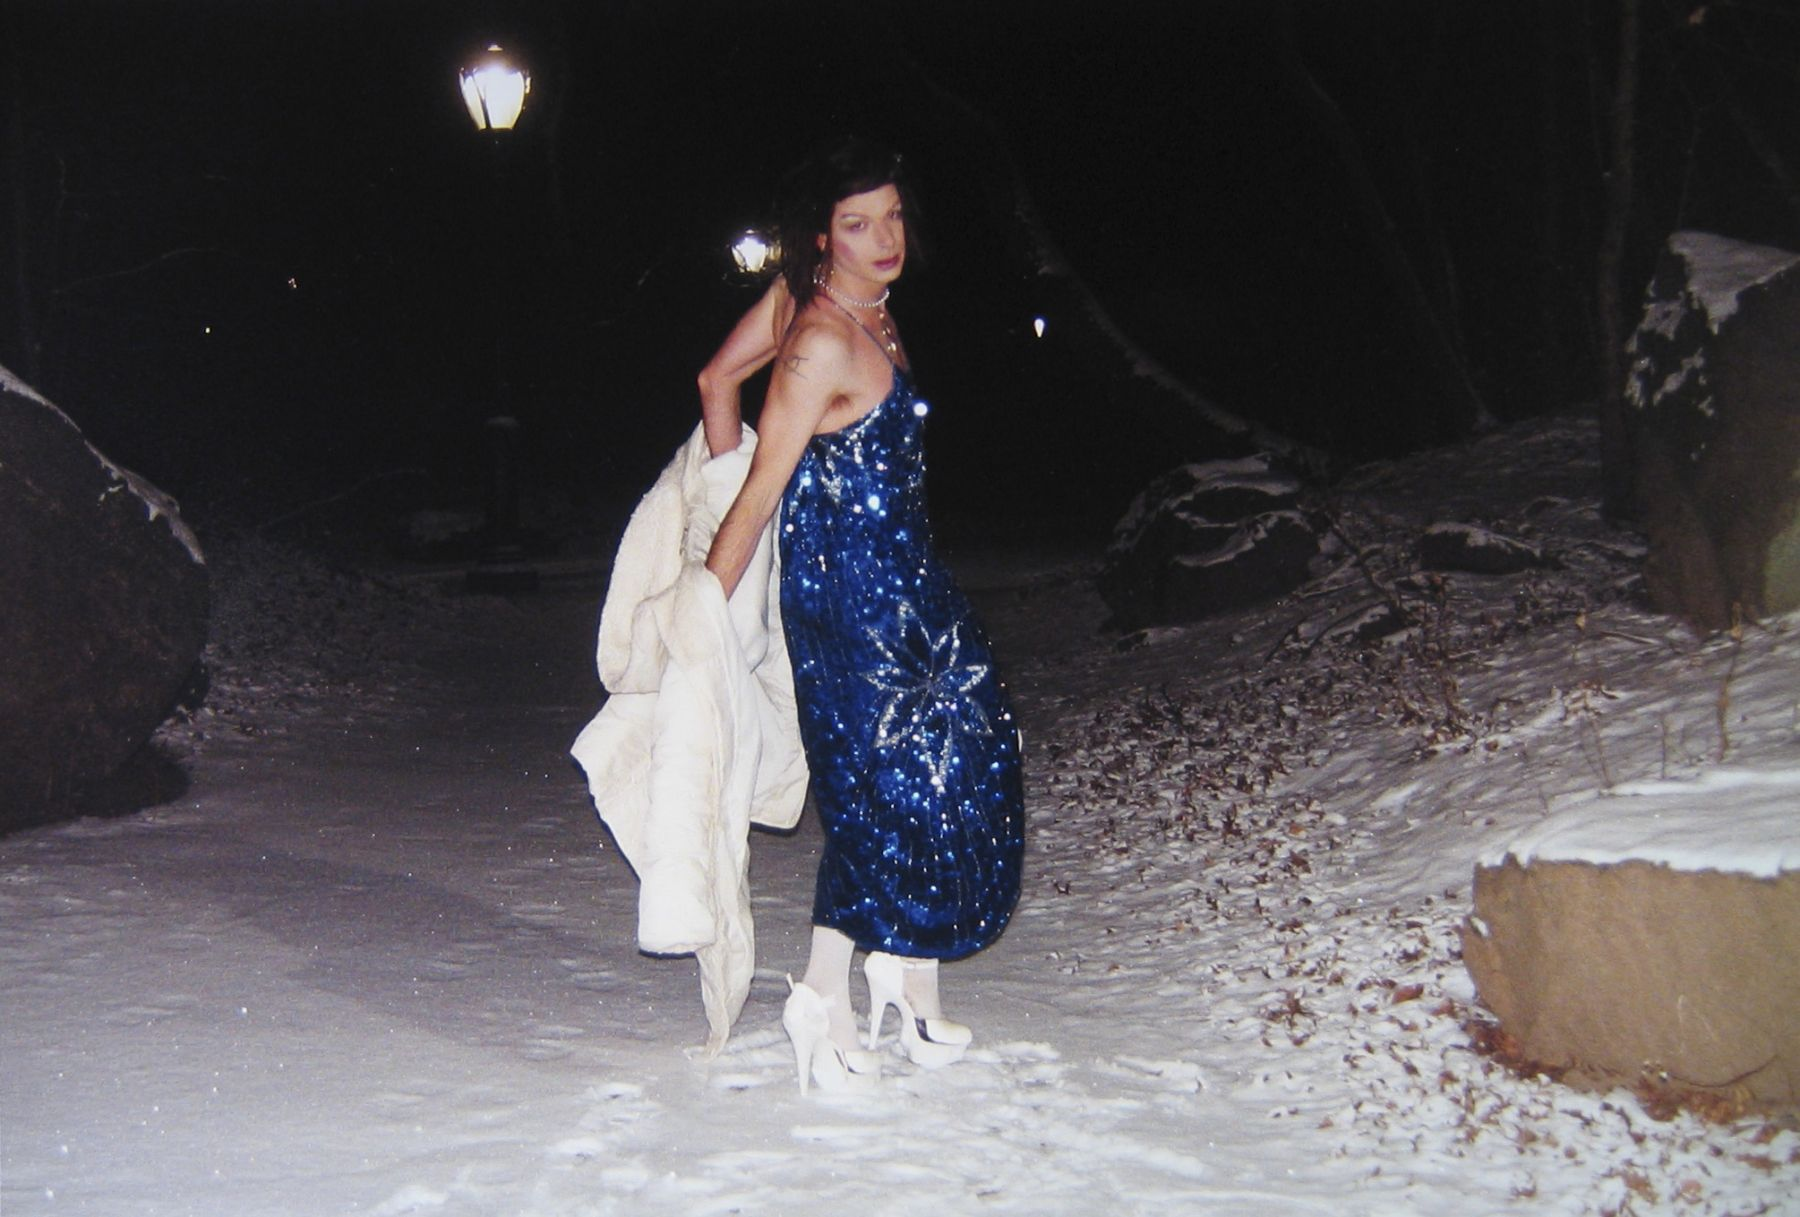 JOE OVELMAN Untitled 15 (from Snow Queen) 2002, c-print, 16 x 23 inches